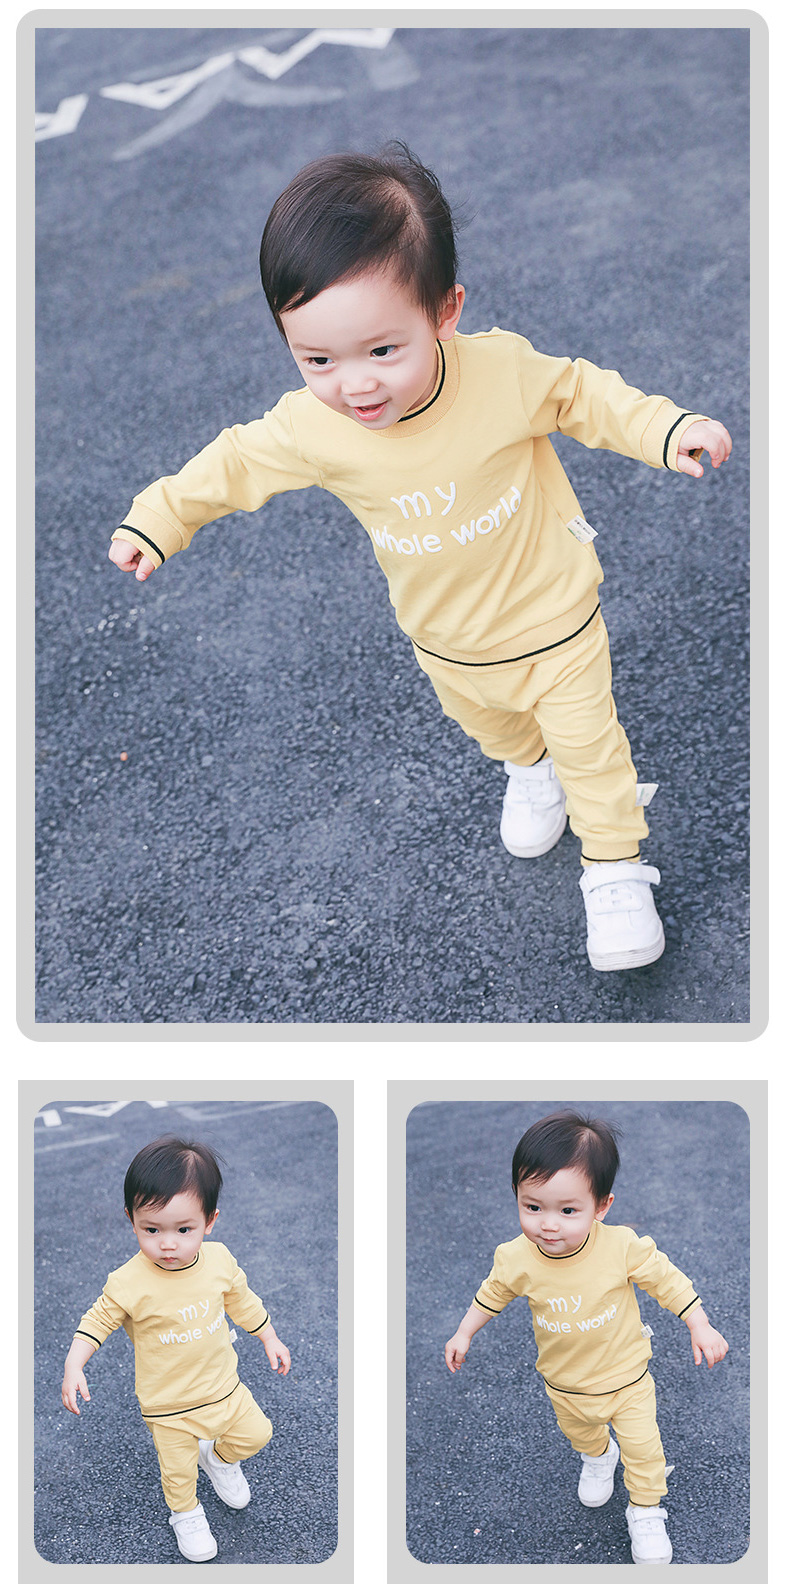 2019 New style pink yellow grey toddler sports outfit suit baby clothing set